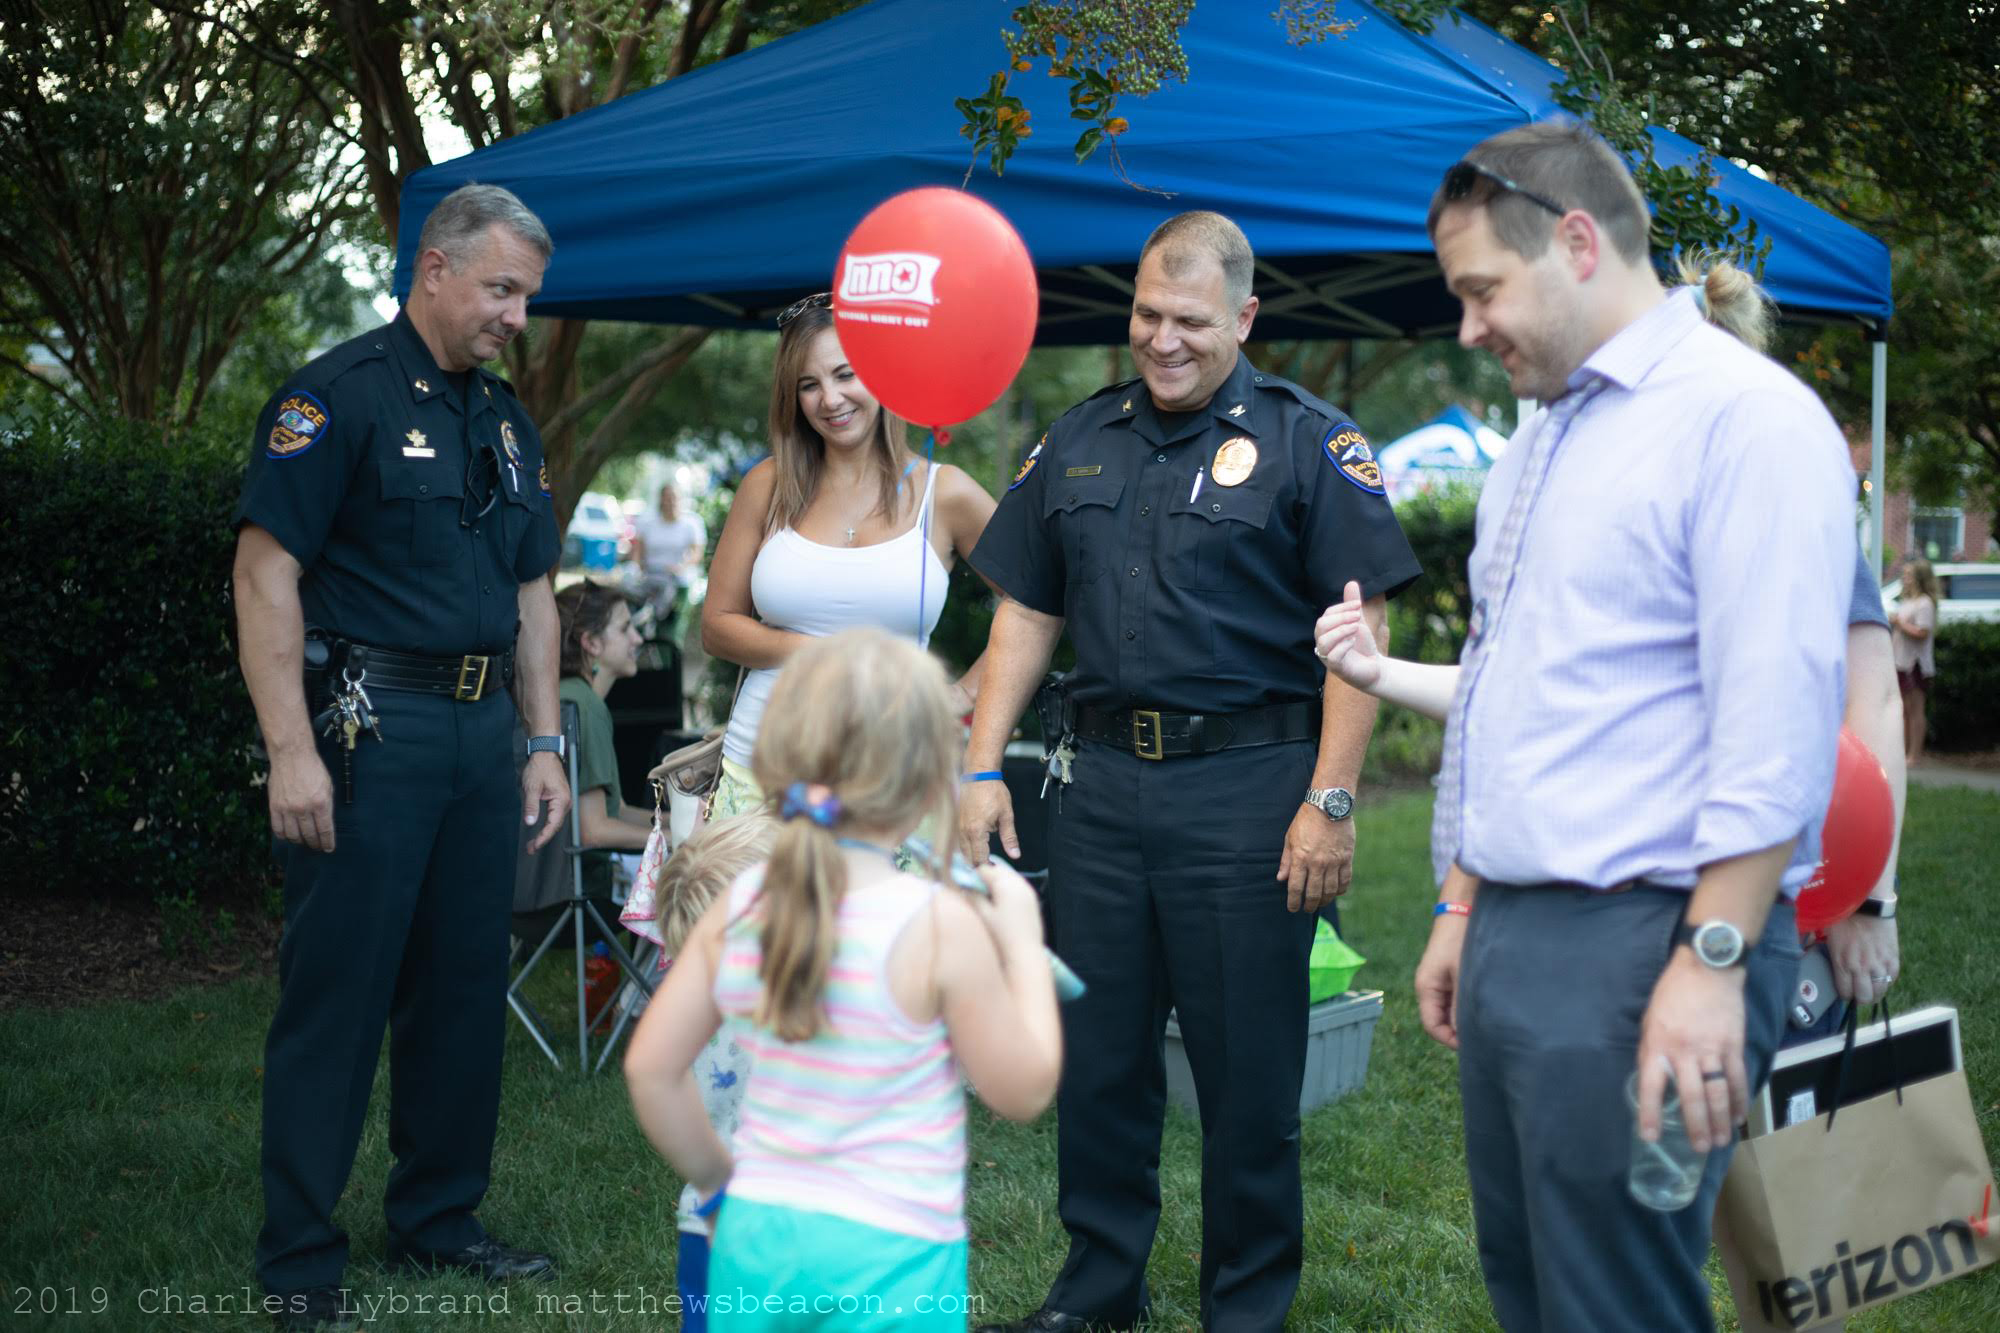 beacon national night out mcgraff.jpg